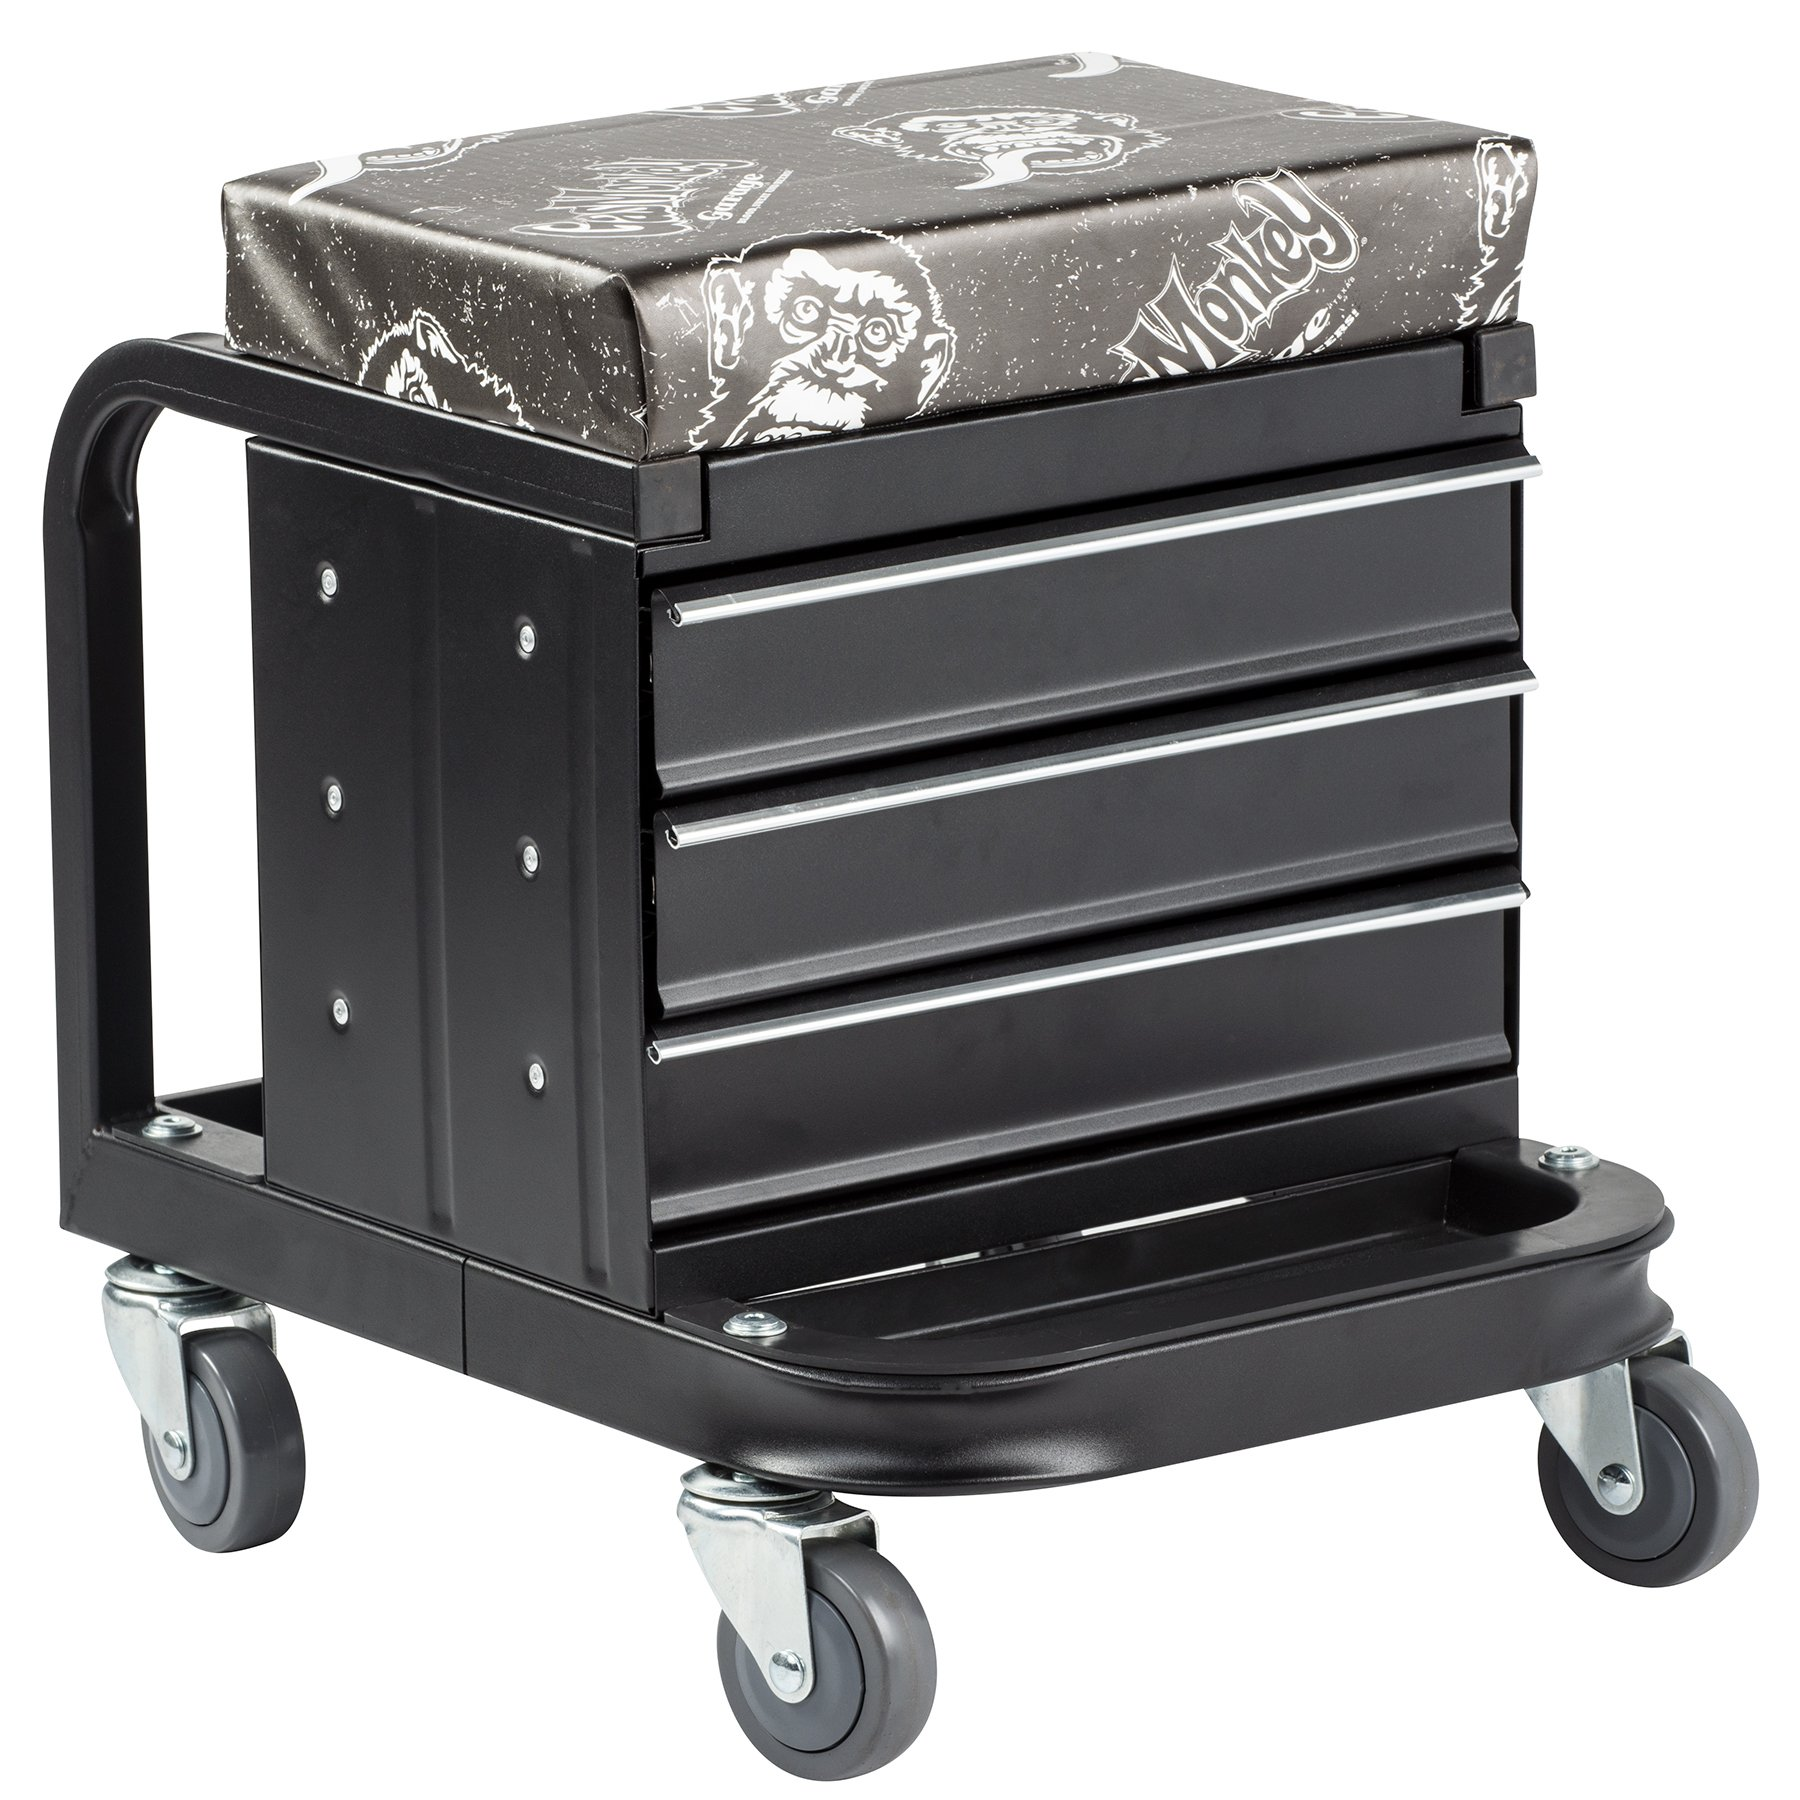 Gas Monkey Creeper Seat and Tool Box Combo - 3-Drawers Toolbox with 4 Rolling Casters - 450 Lbs Capacity by Gas Monkey (Image #2)